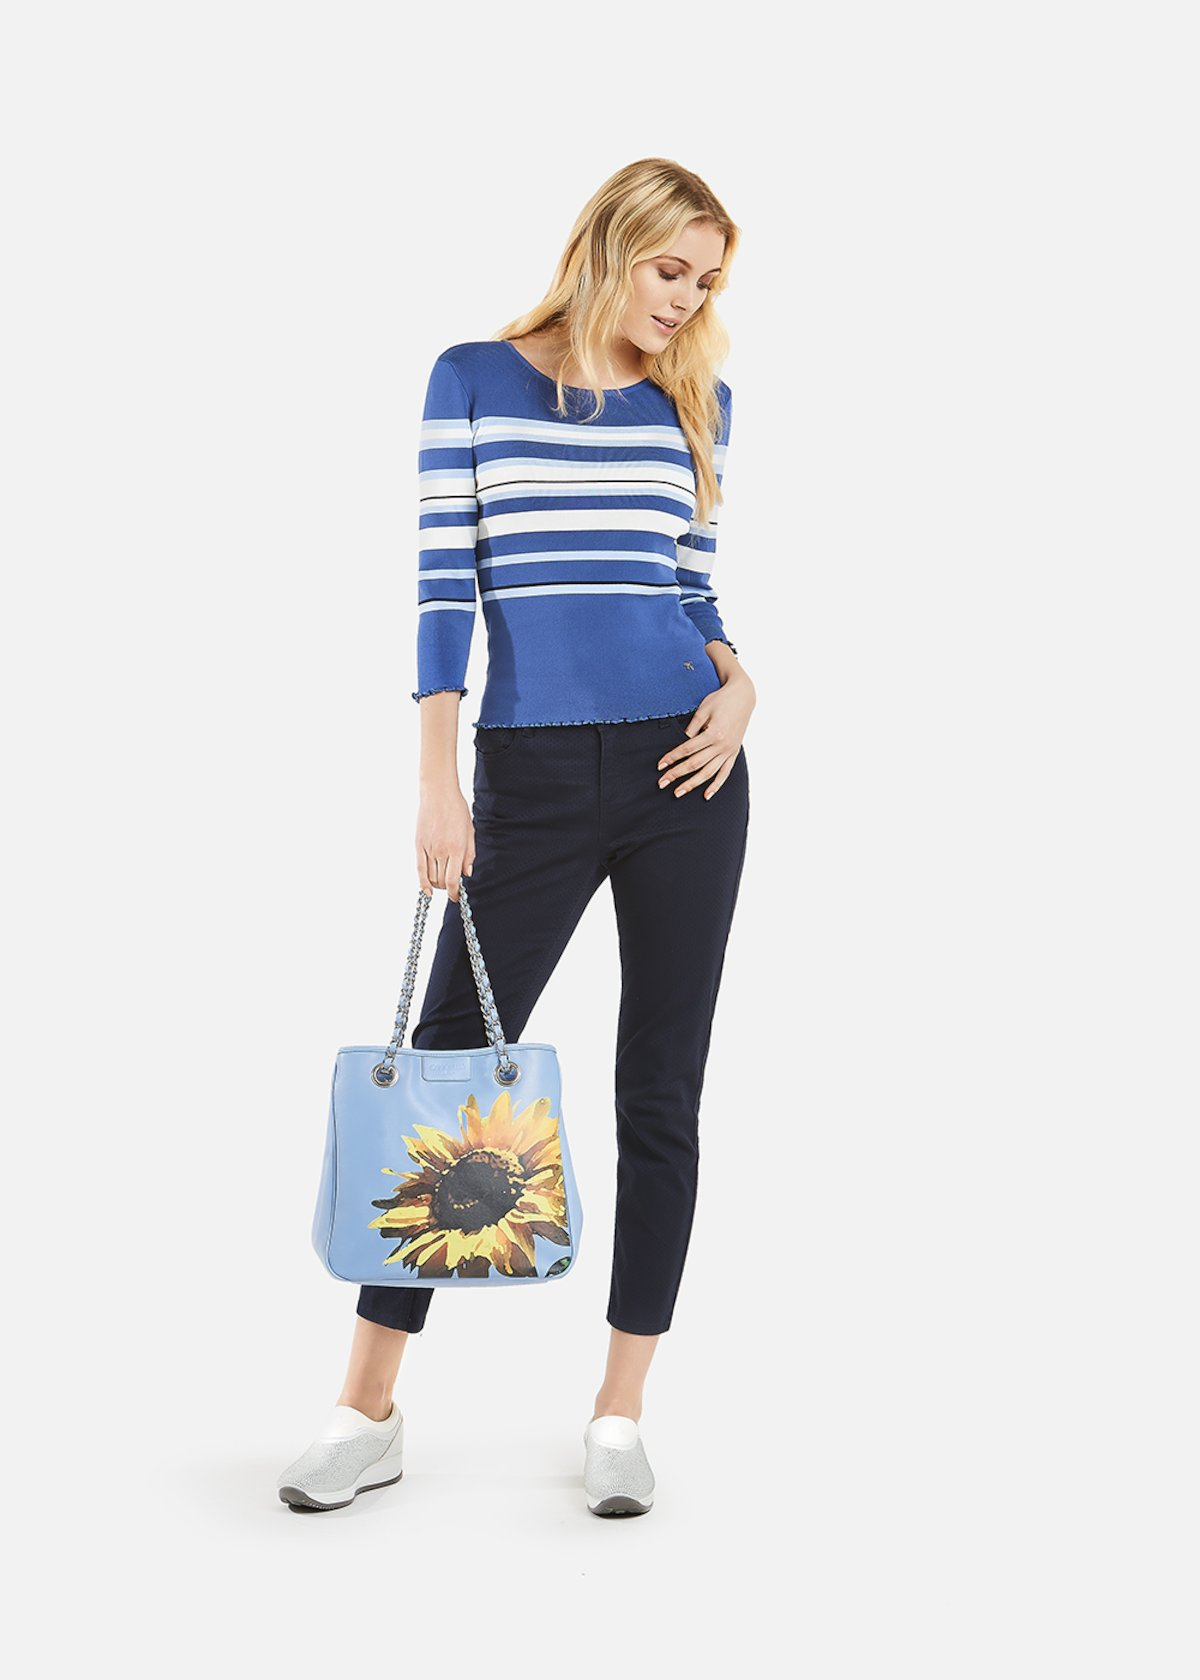 Moyra sweater stripes printed